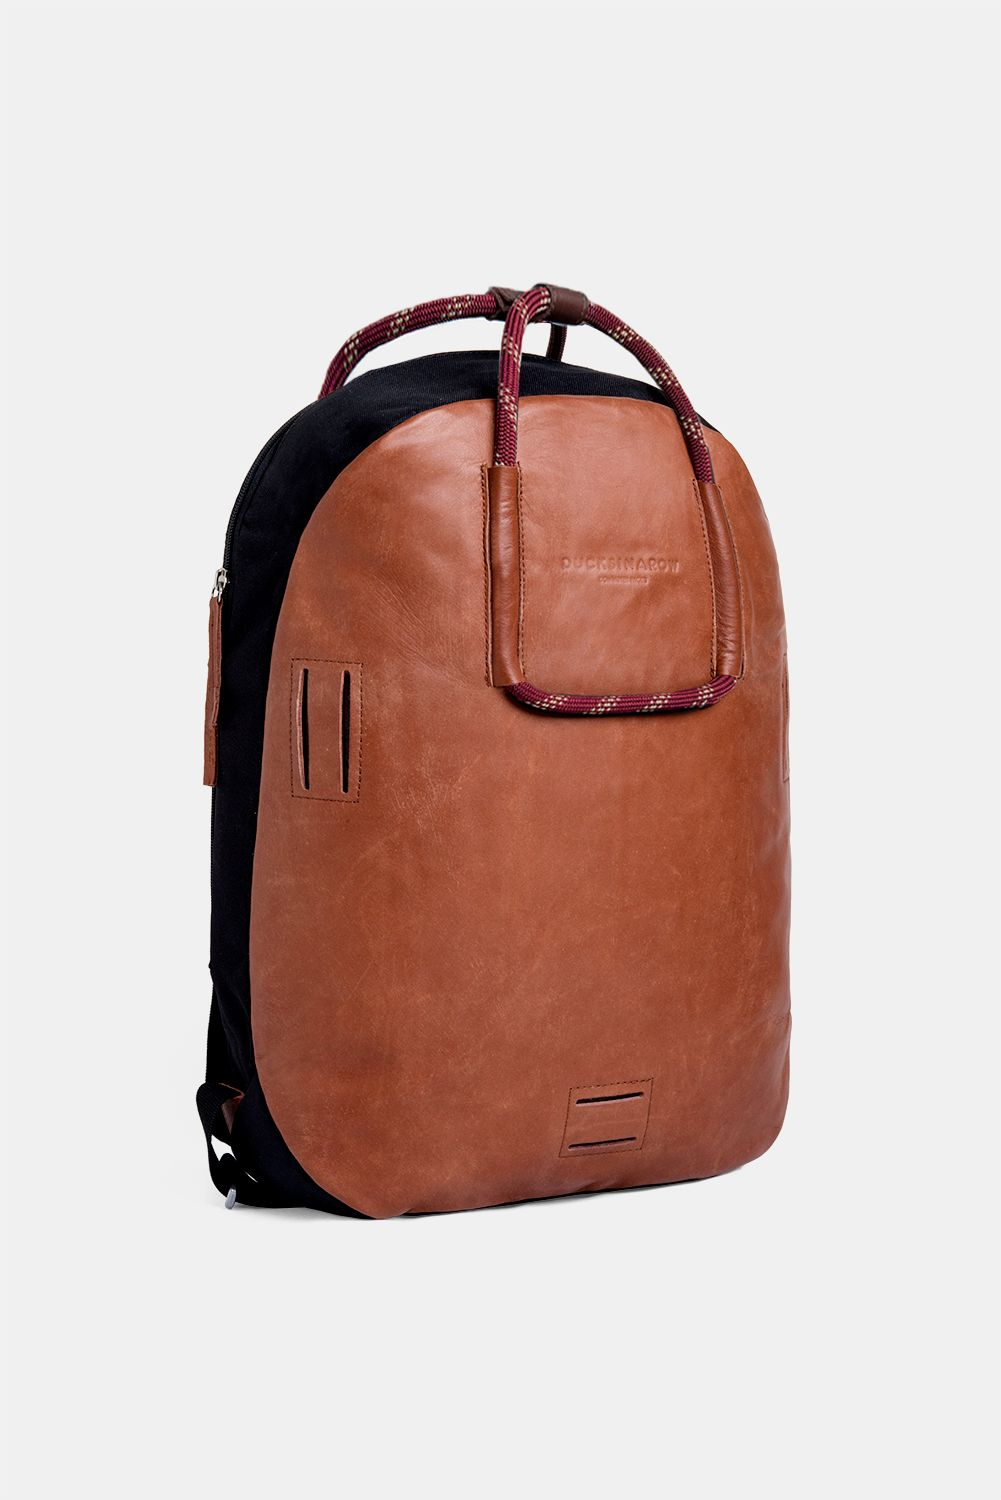 Backpack camel | Bags | Backpacks, Bags, Camel